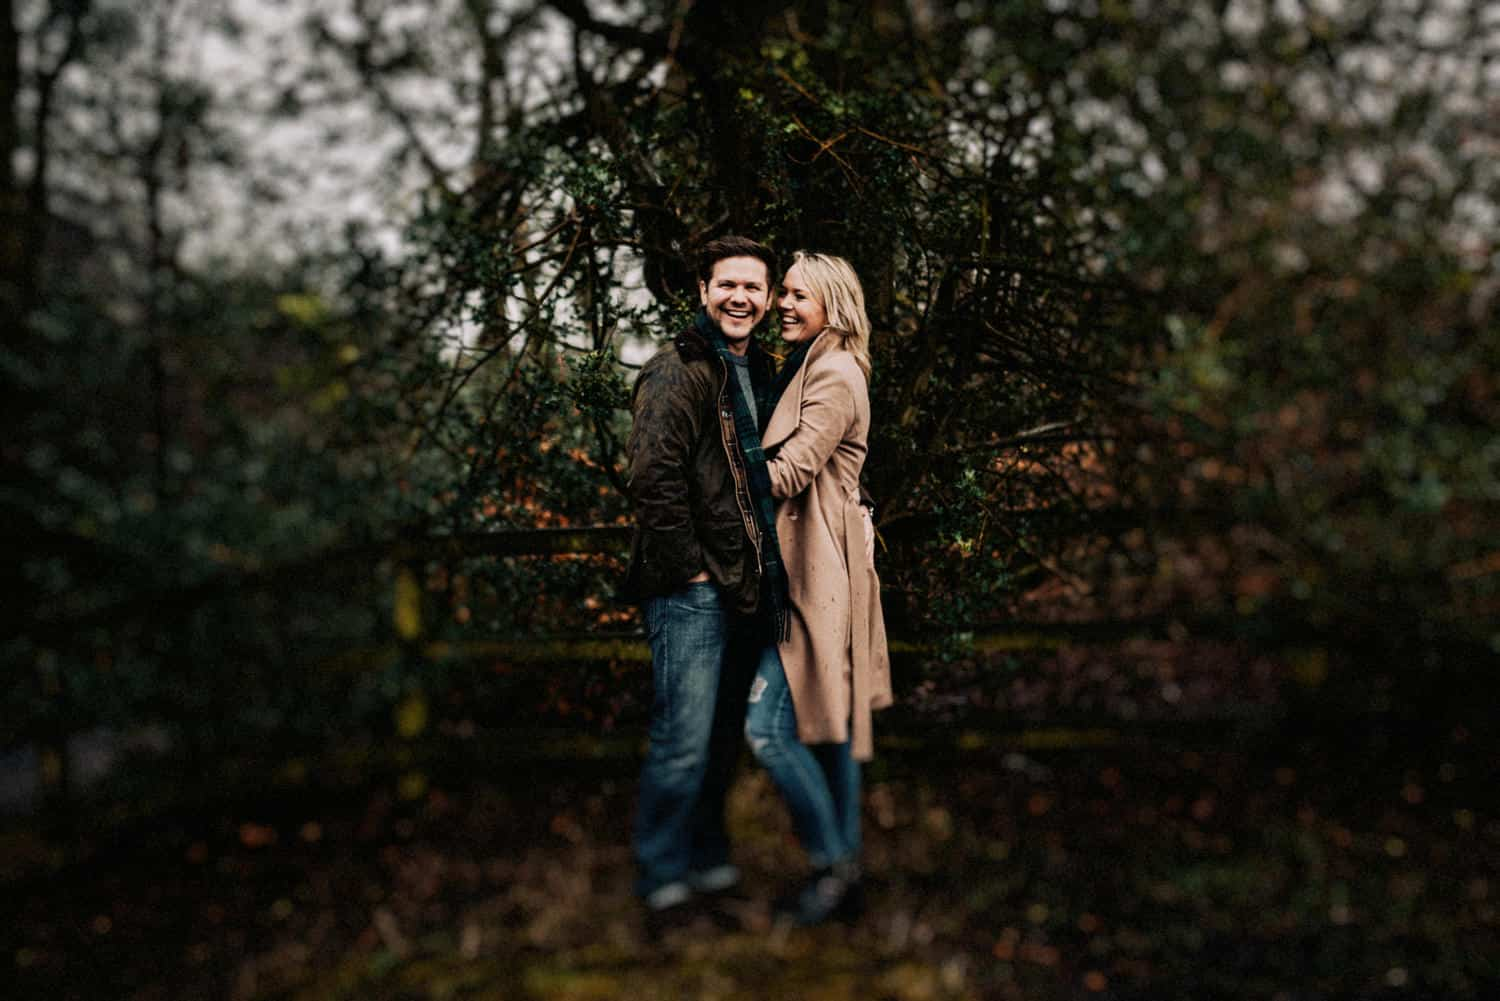 Love shoot at Rivington | Ian MacMichael photography